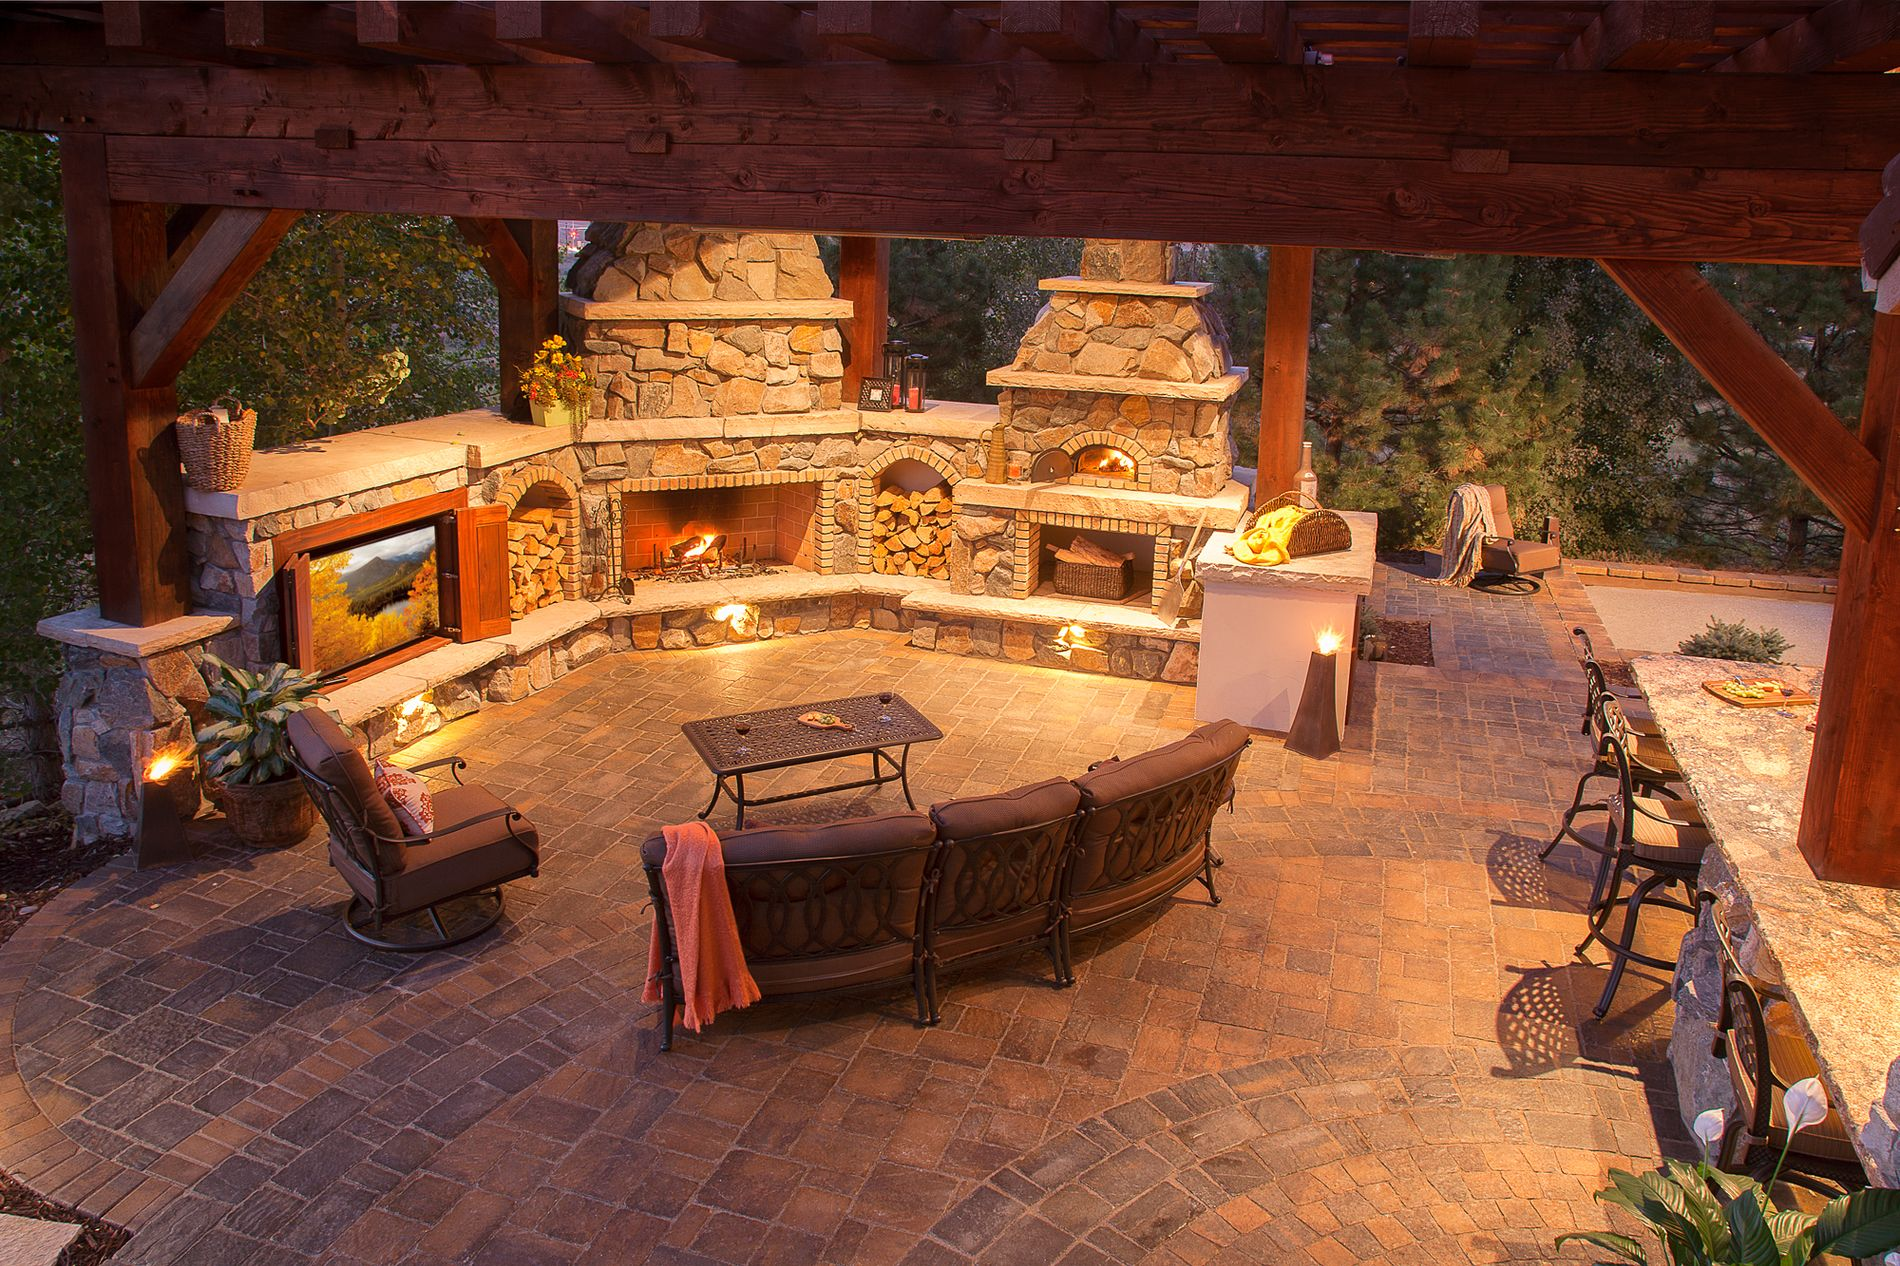 Outdoor fireplace, pizza oven, kitchen, and theater, with paver patios